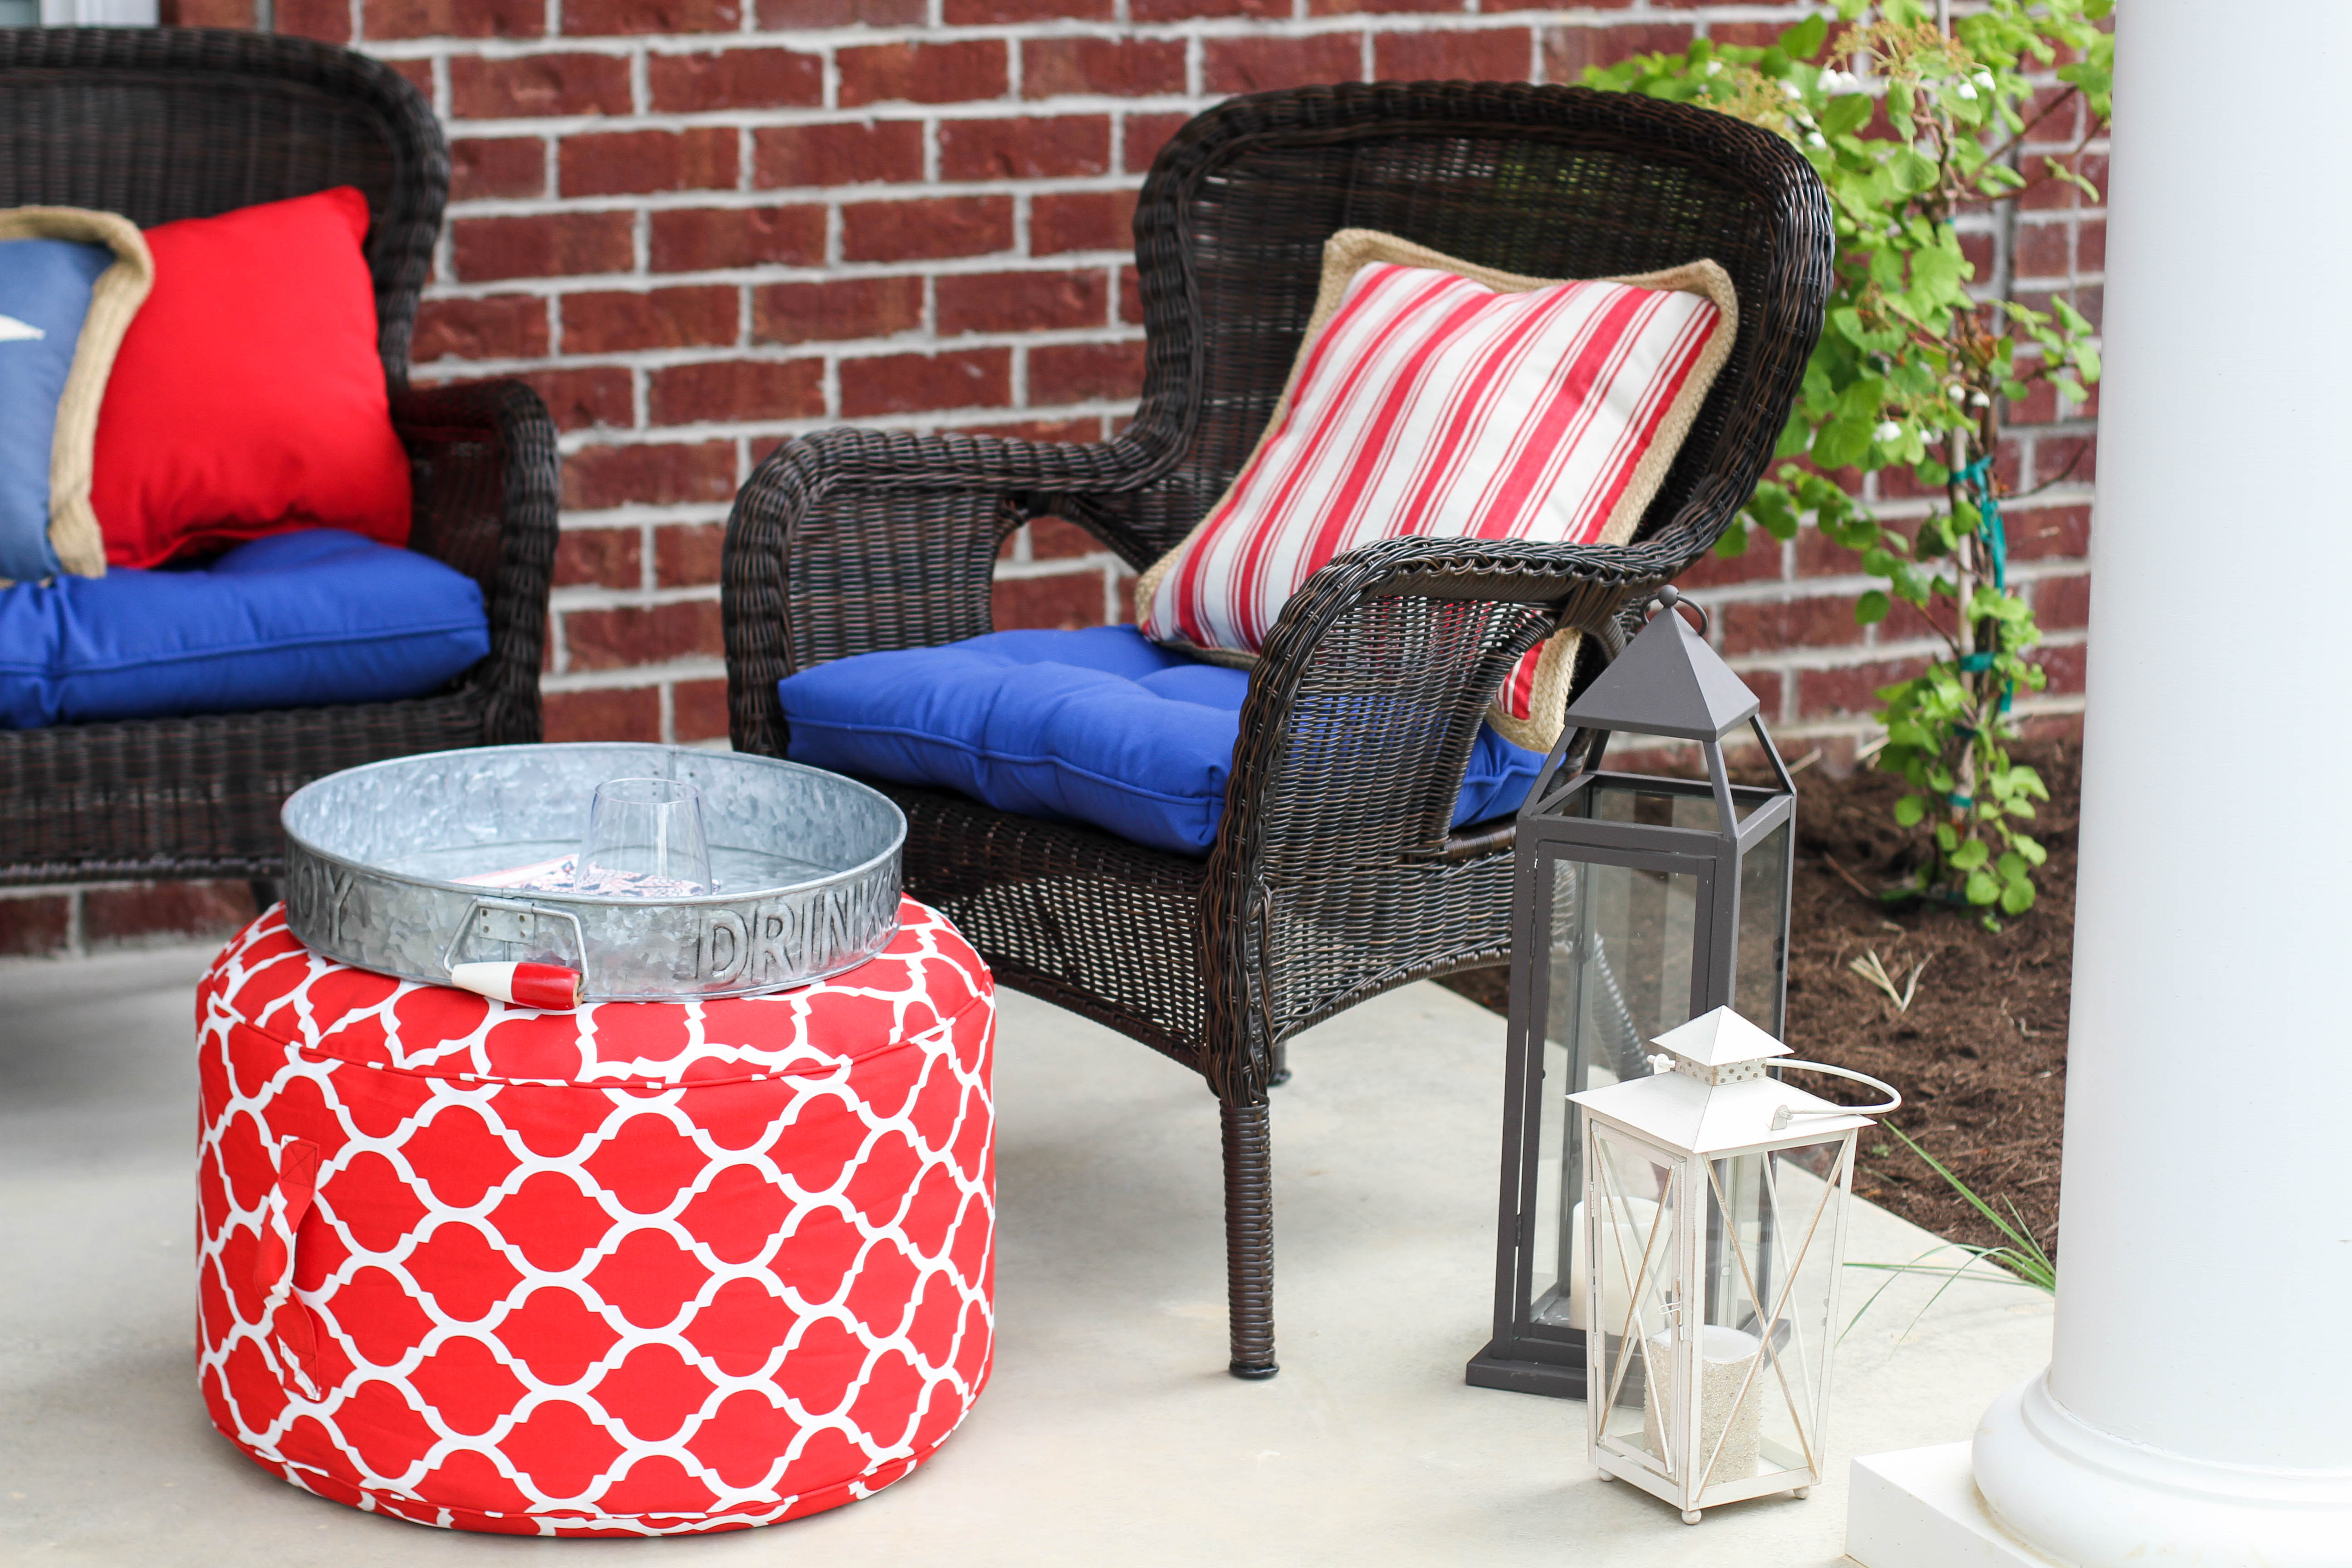 Americana Appeal With Pier Imports Outdoor Living A Southern - Pier 1 outdoor coffee table